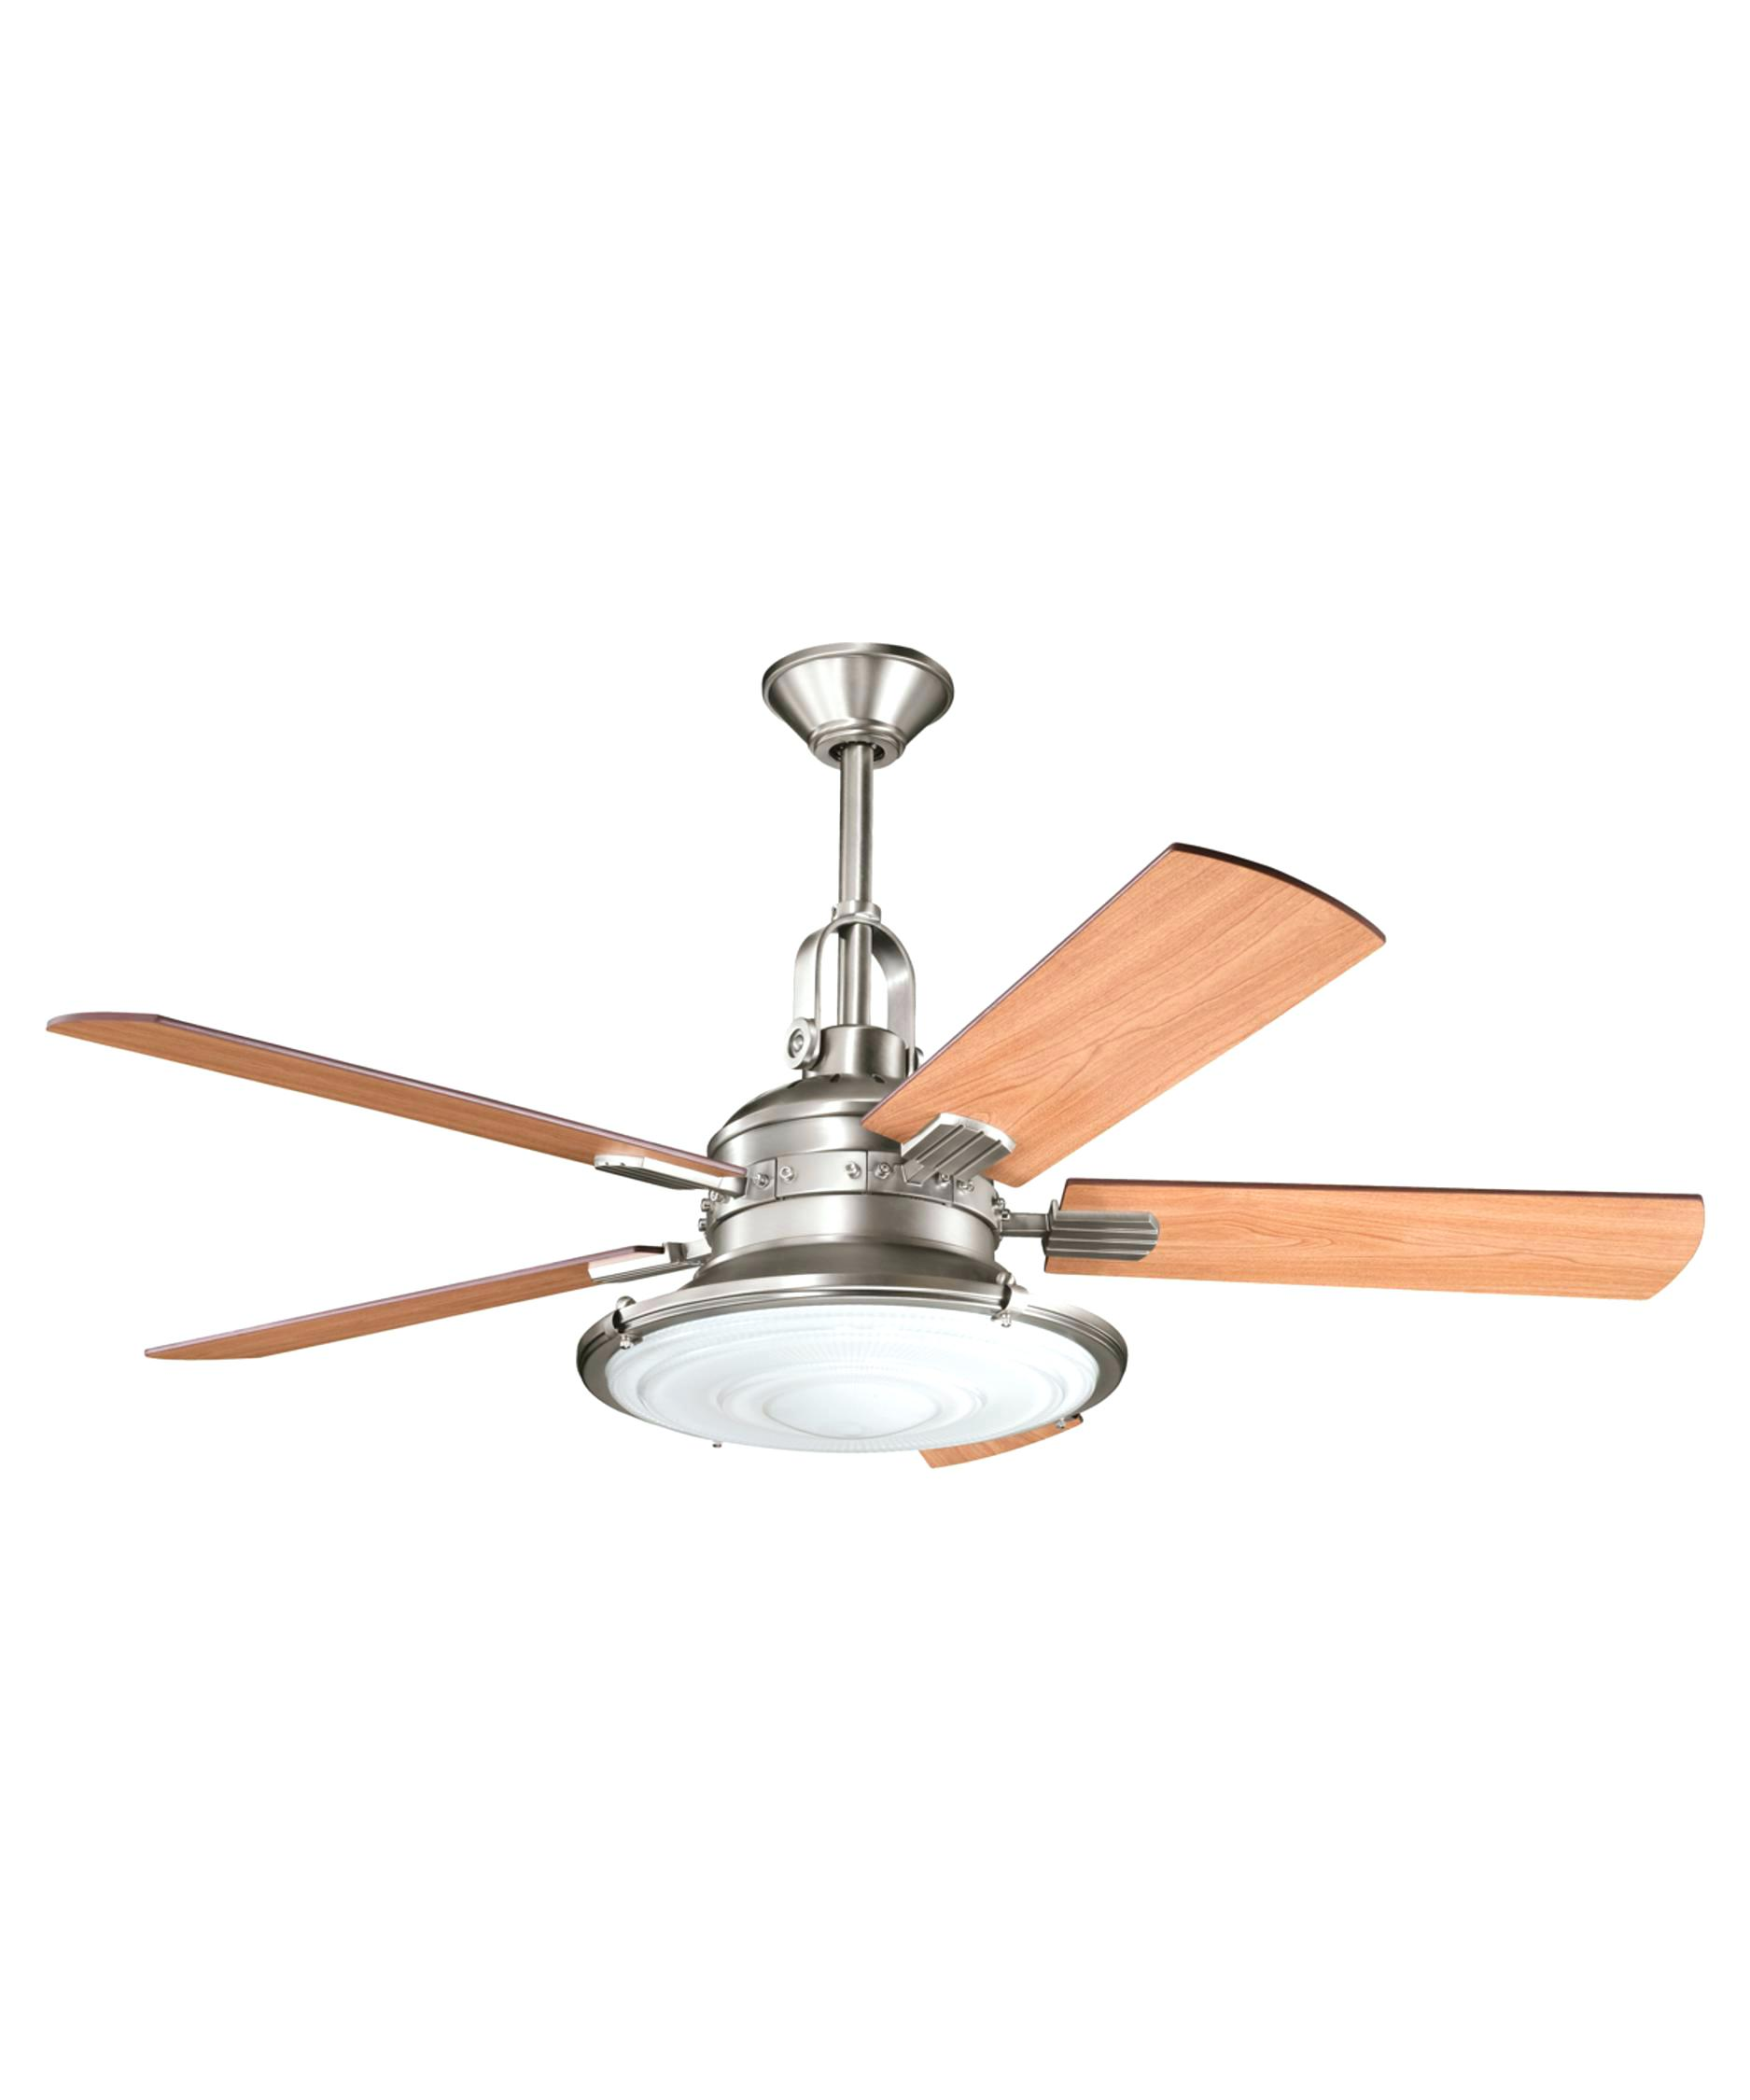 ceiling com bronze galvanized outdoor afaf walmart fan ip blufton honeywell